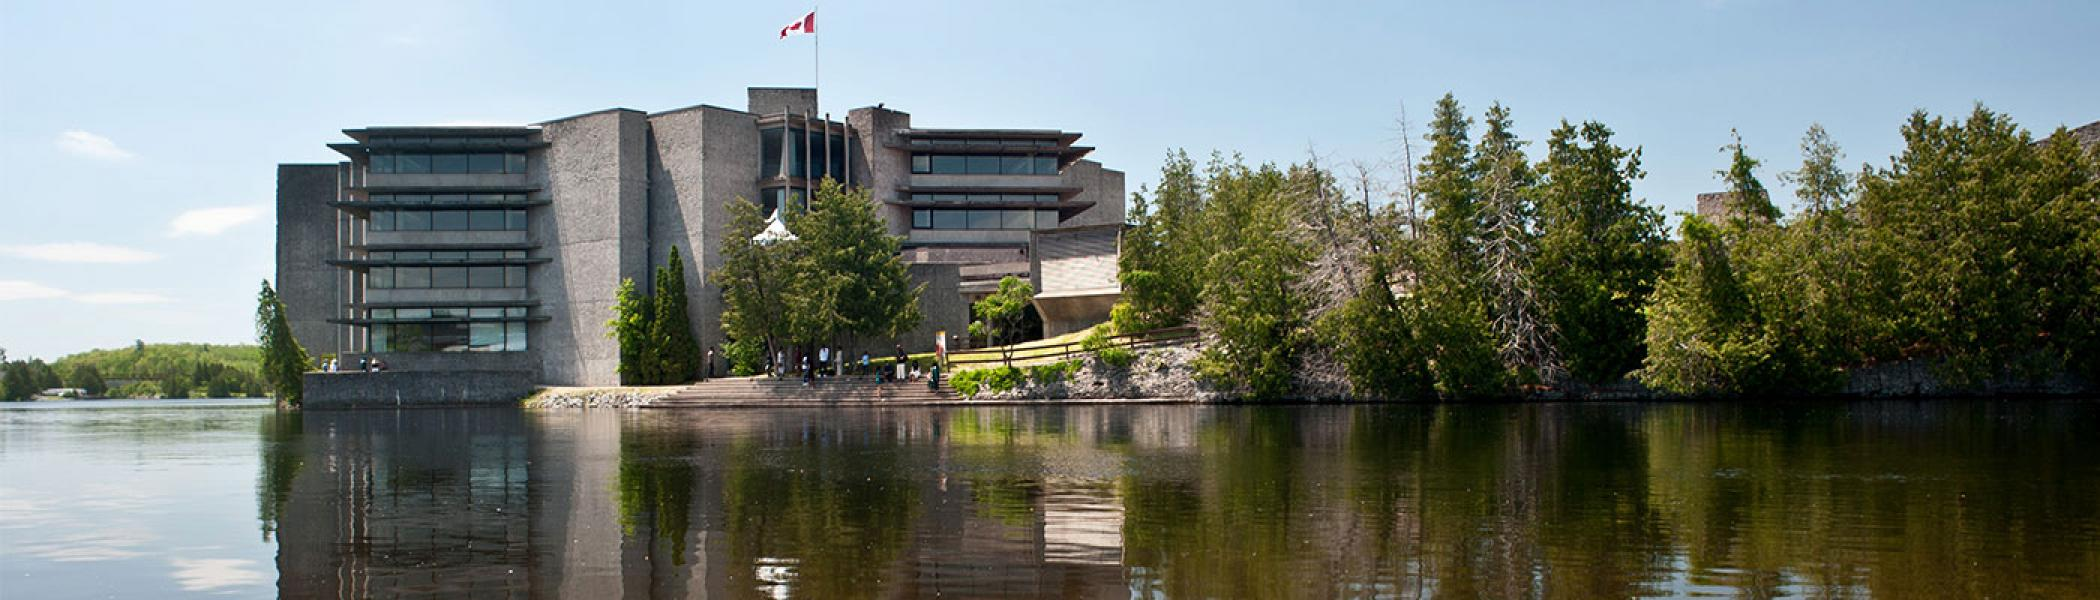 Trent's Bata Library from across the Otonabee river on a cloudless, summer day